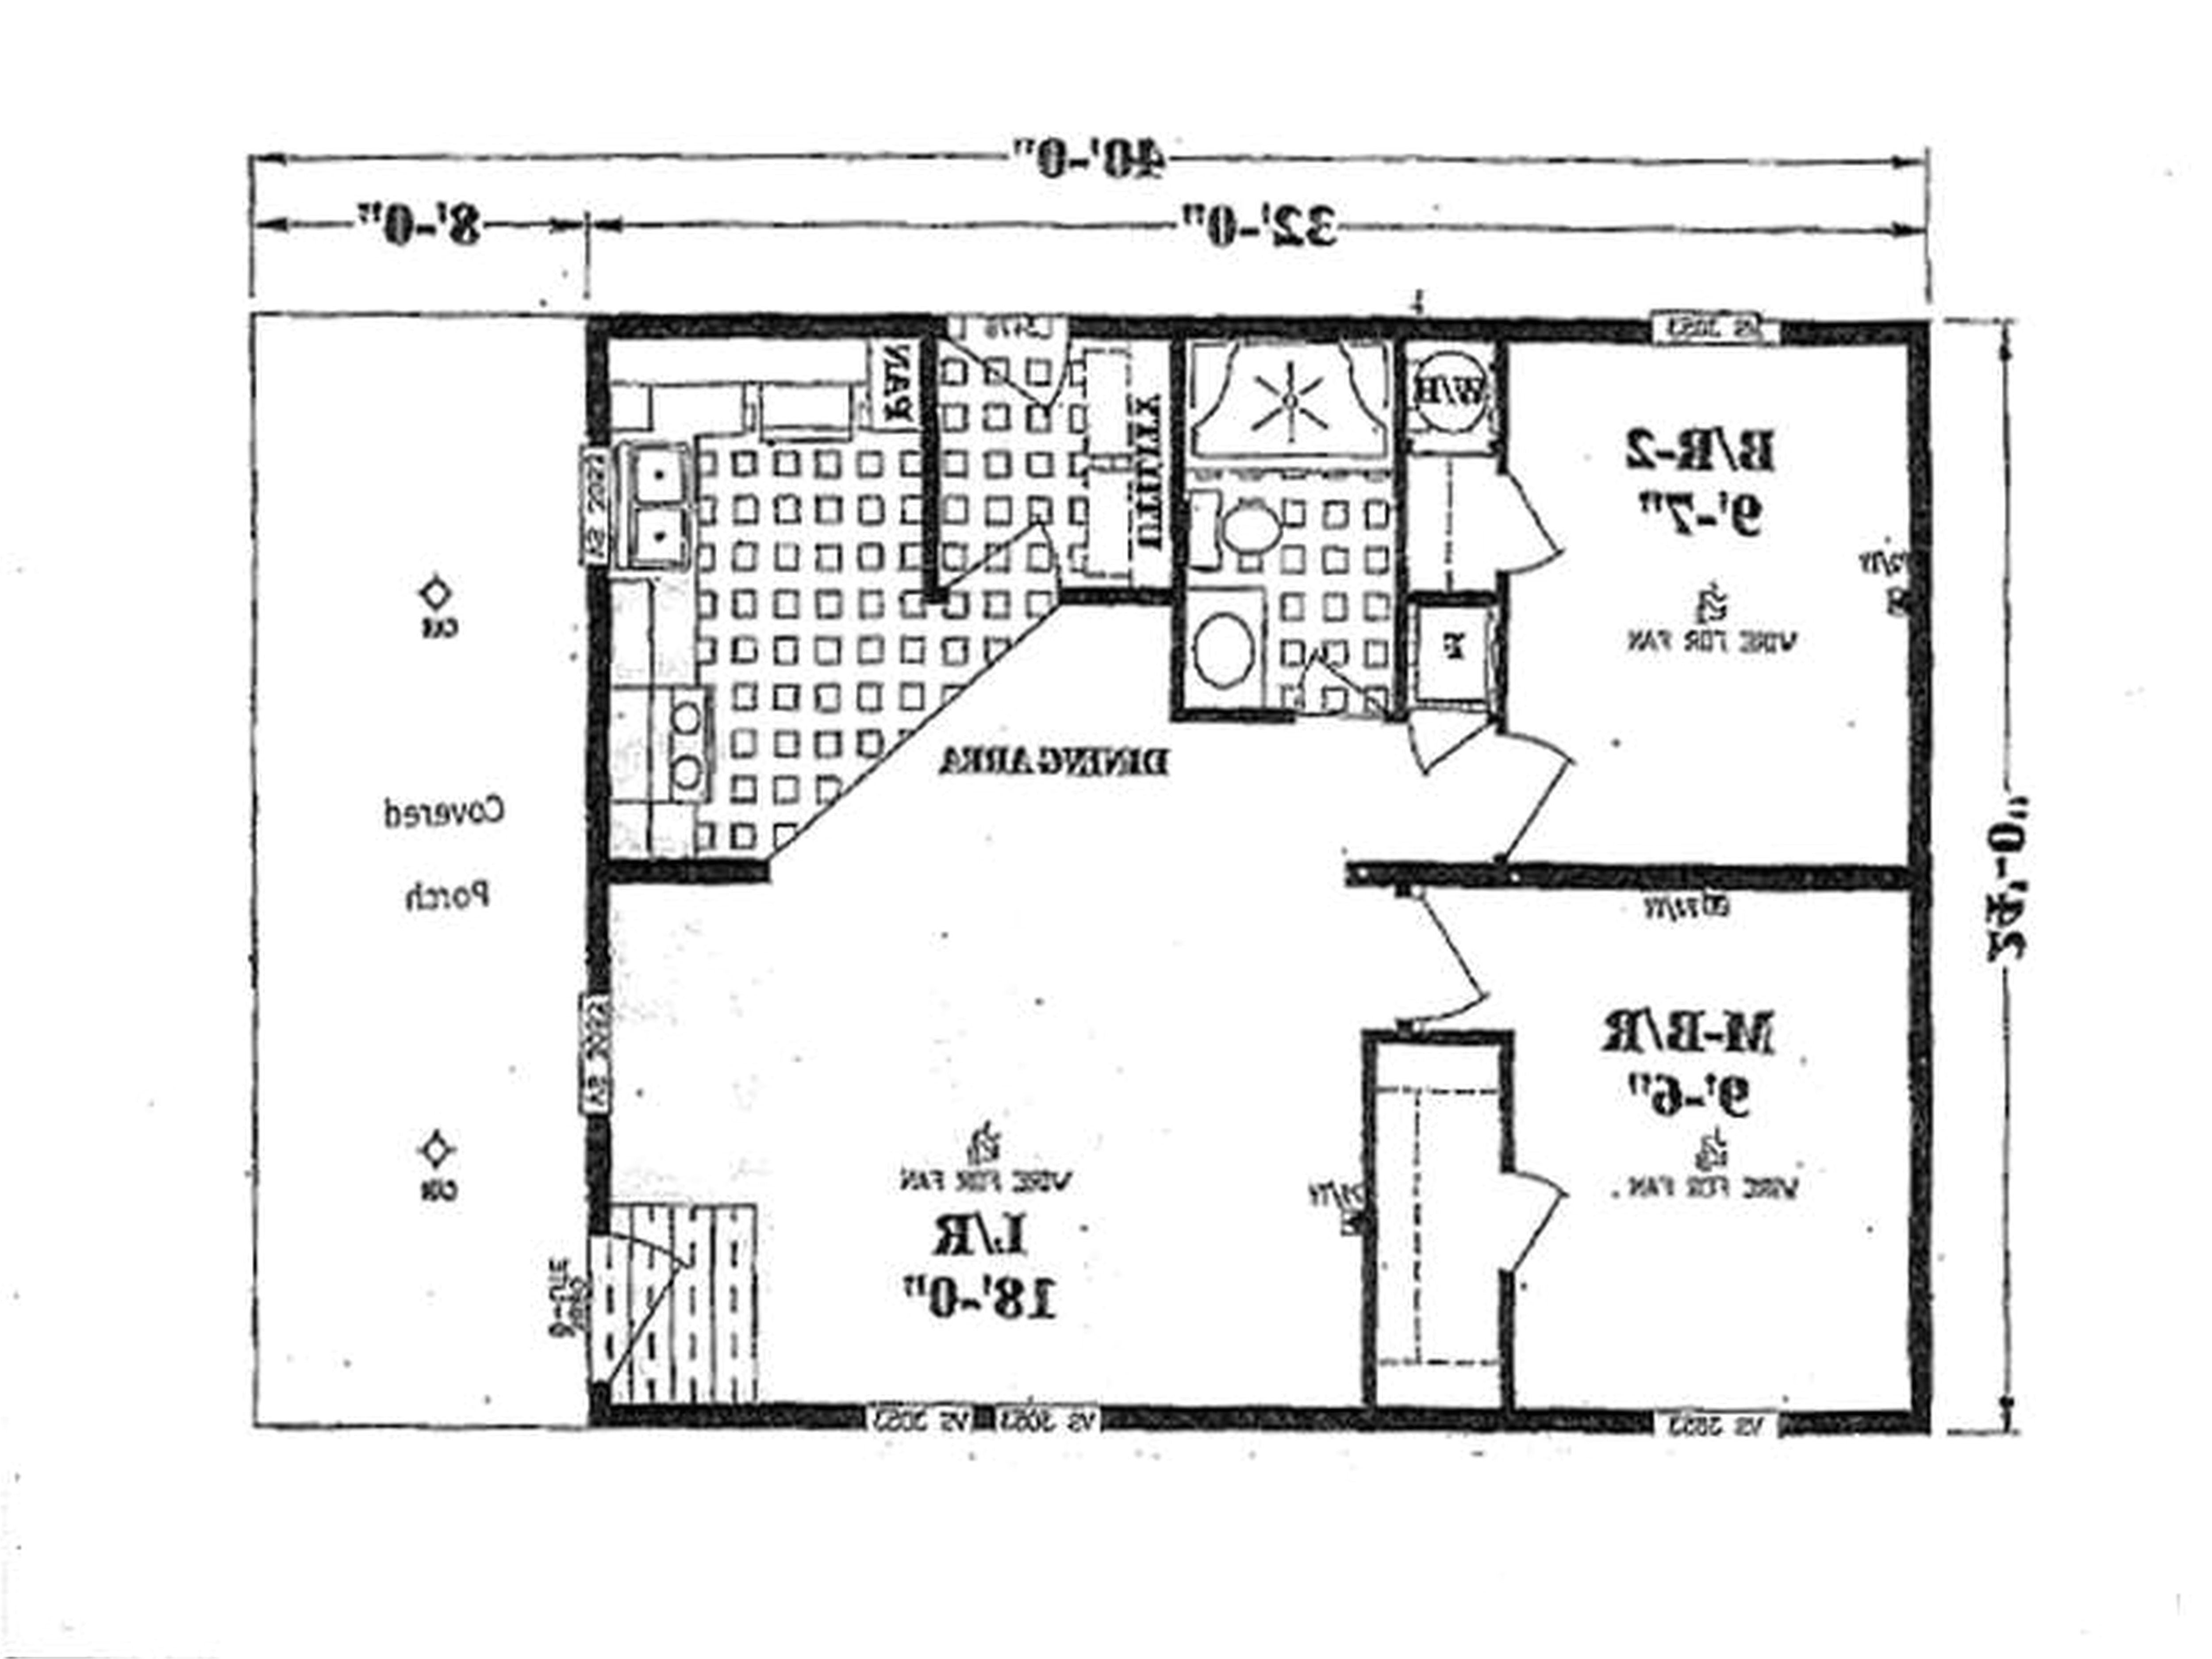 Two Bedroom Ranch Style House Plans 2 Bedroom Ranch Style House Plans 2018 House Plans and